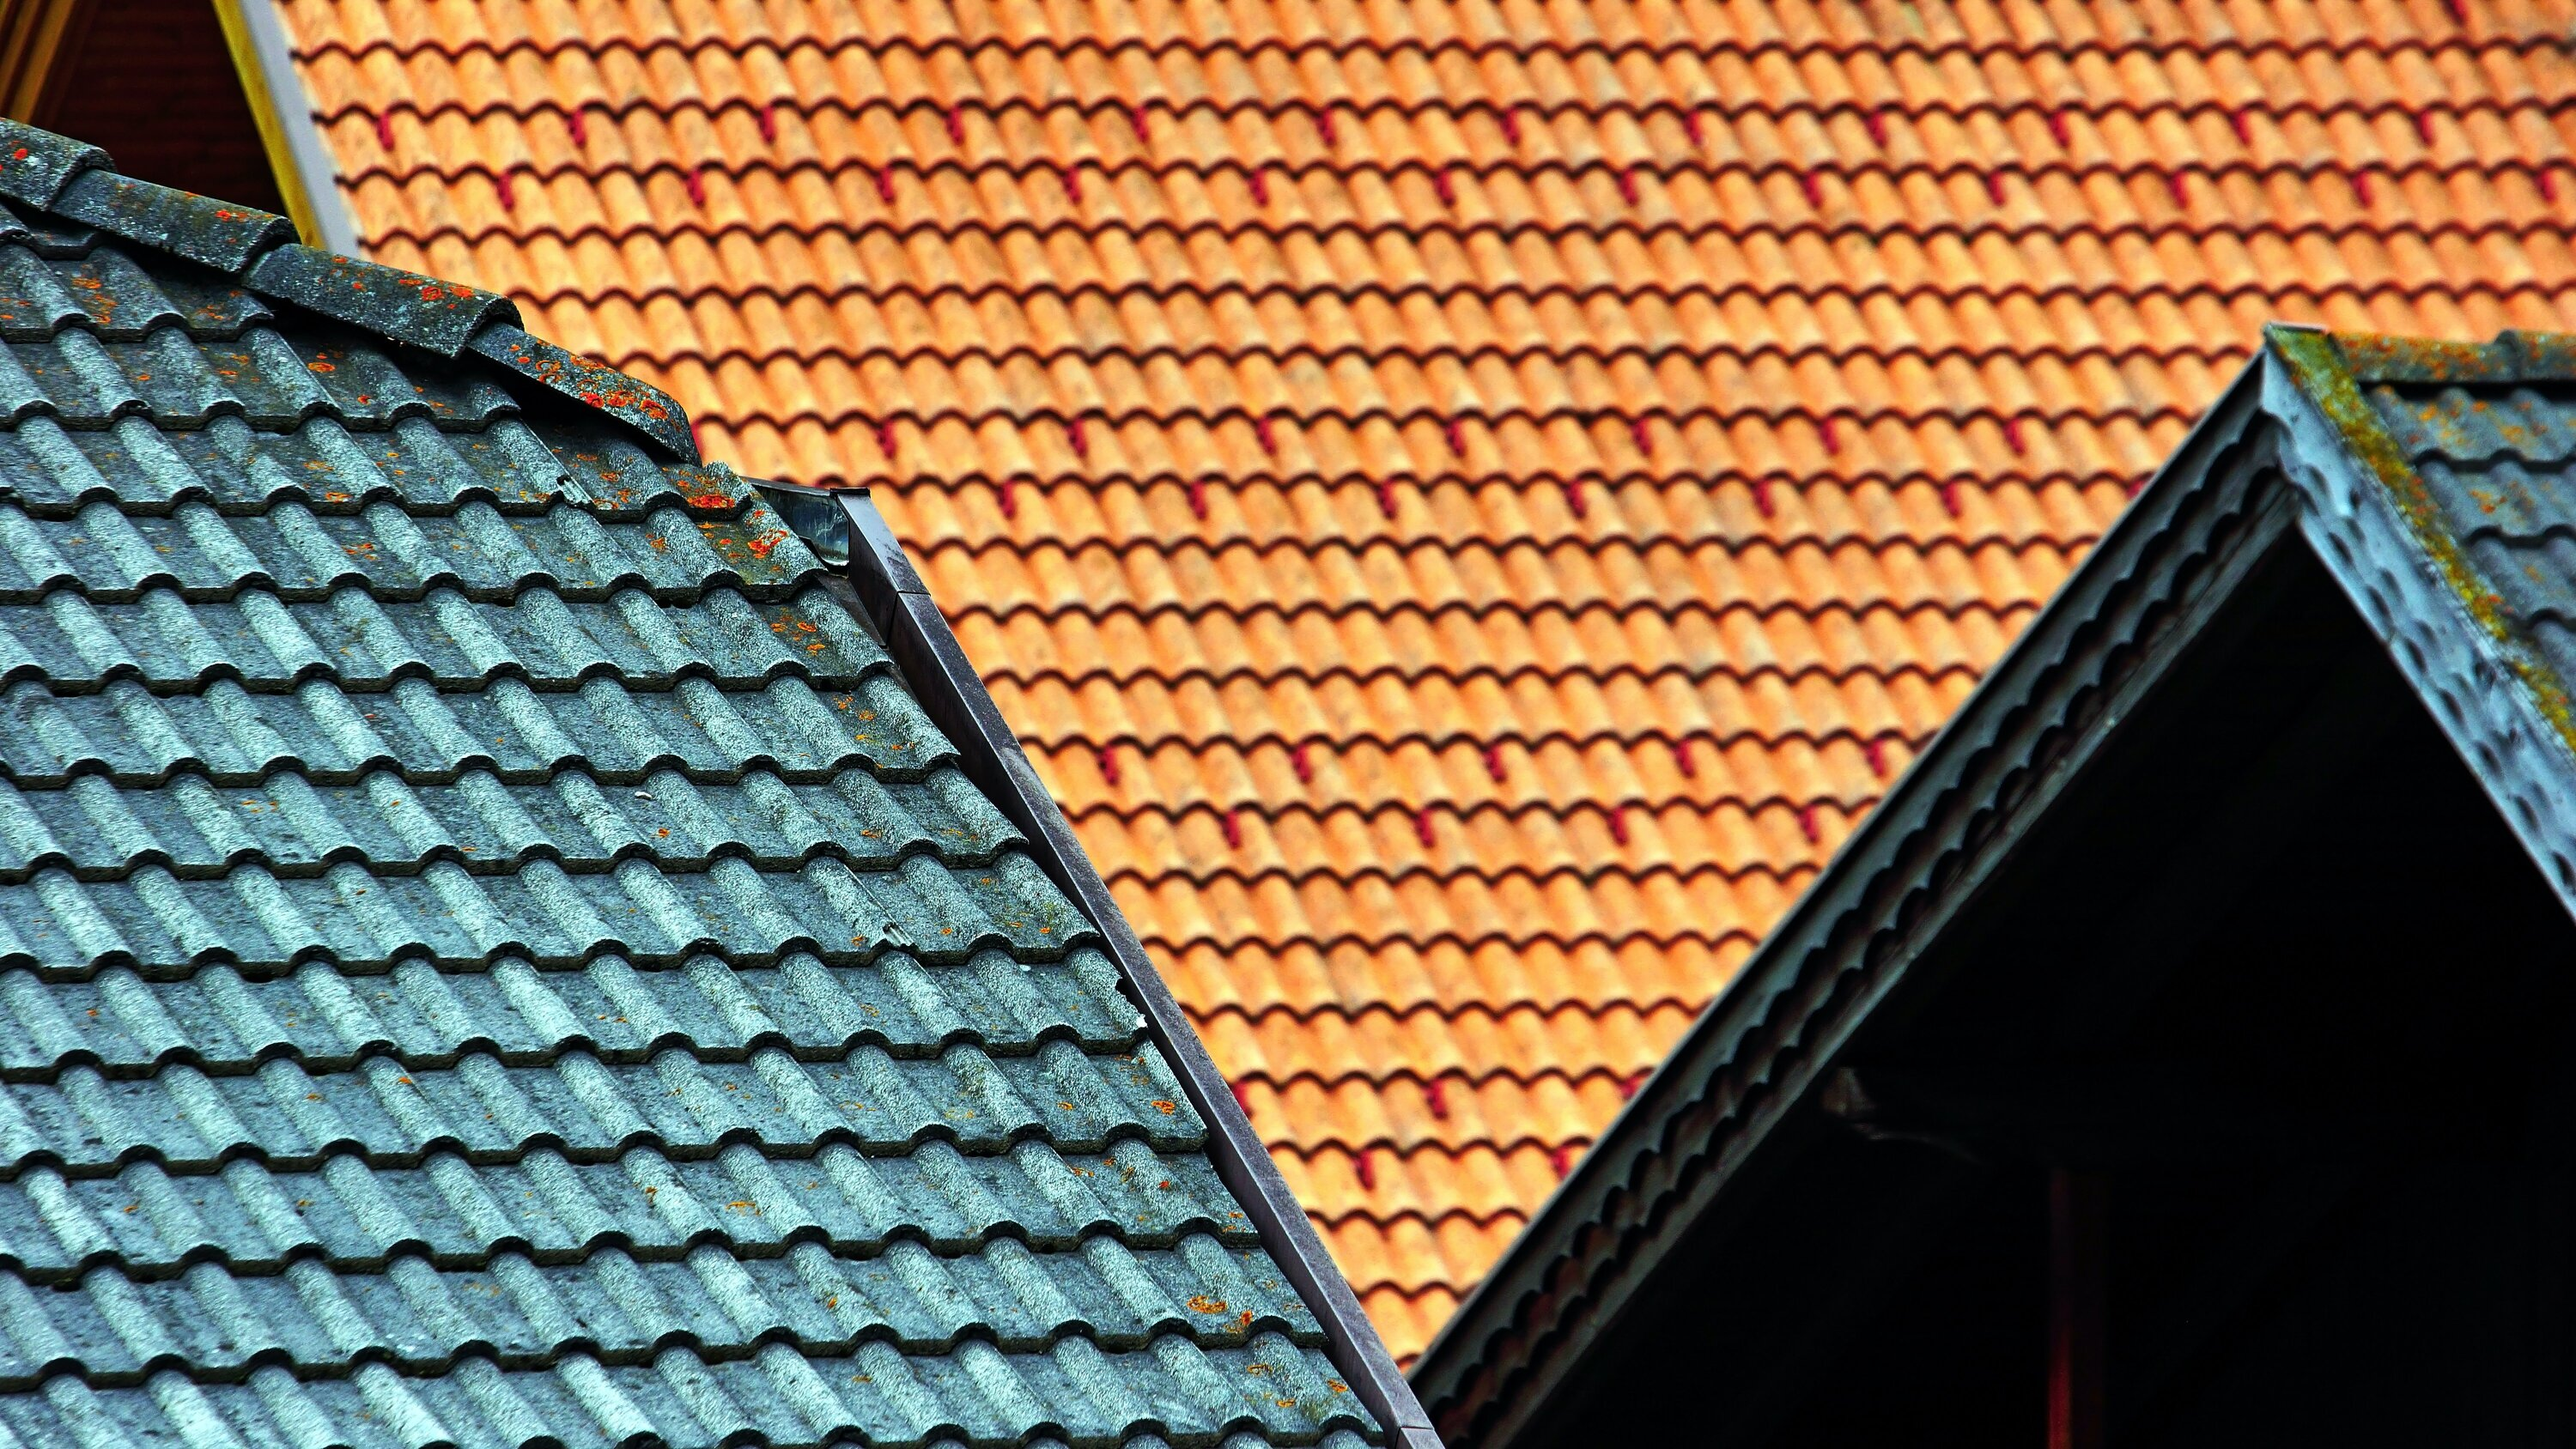 What You Need to Know About Annual Roofing Inspections